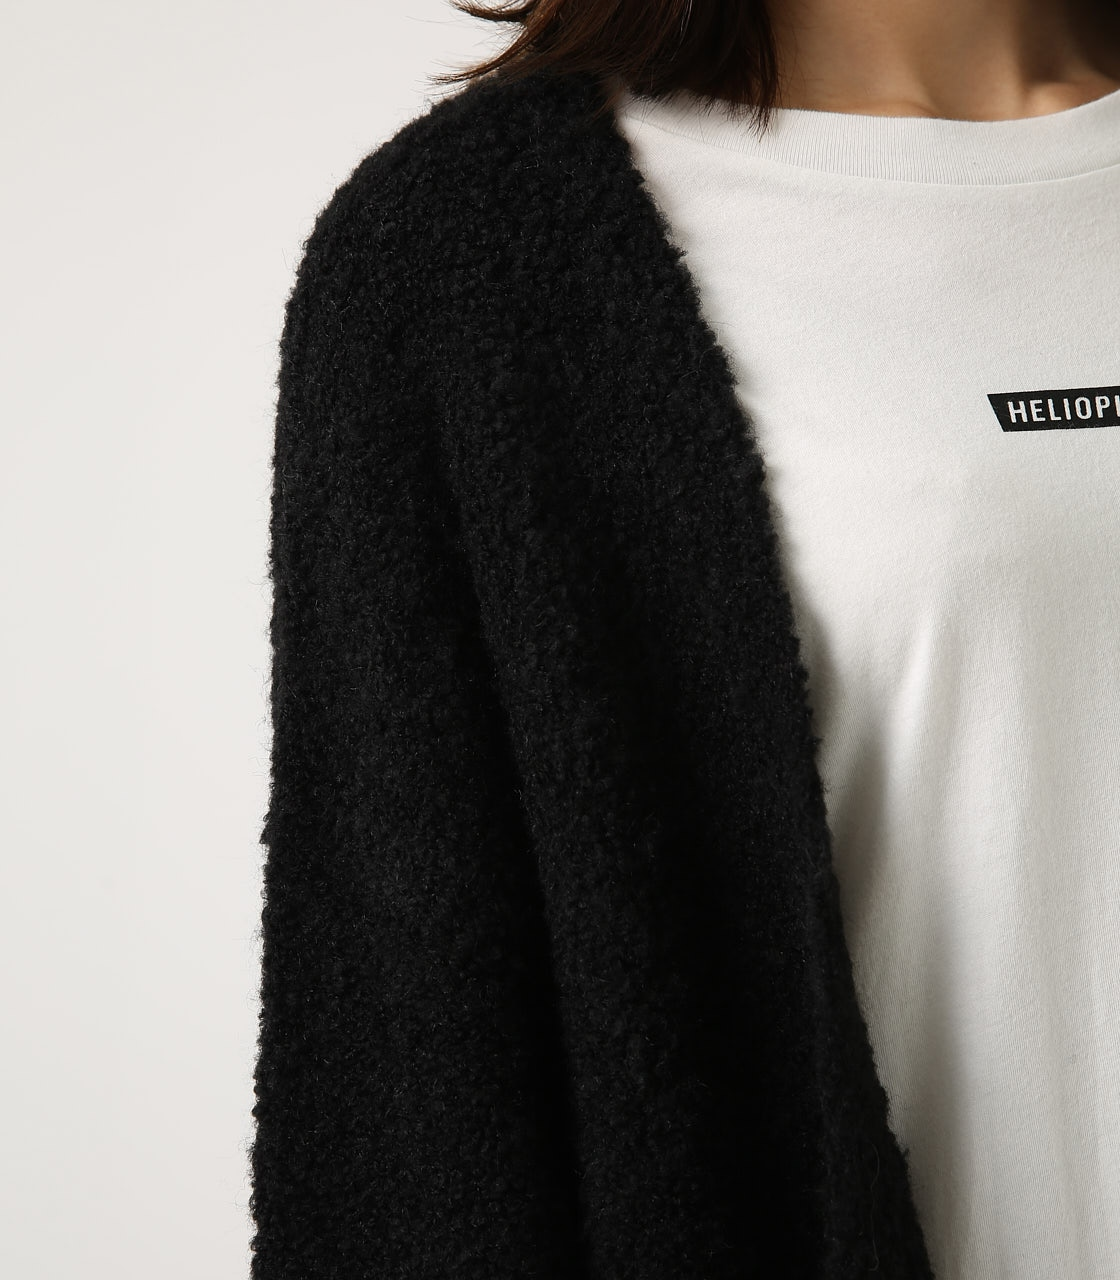 【AZUL BY MOUSSY】ブークレロングカーデ 詳細画像 BLK 8